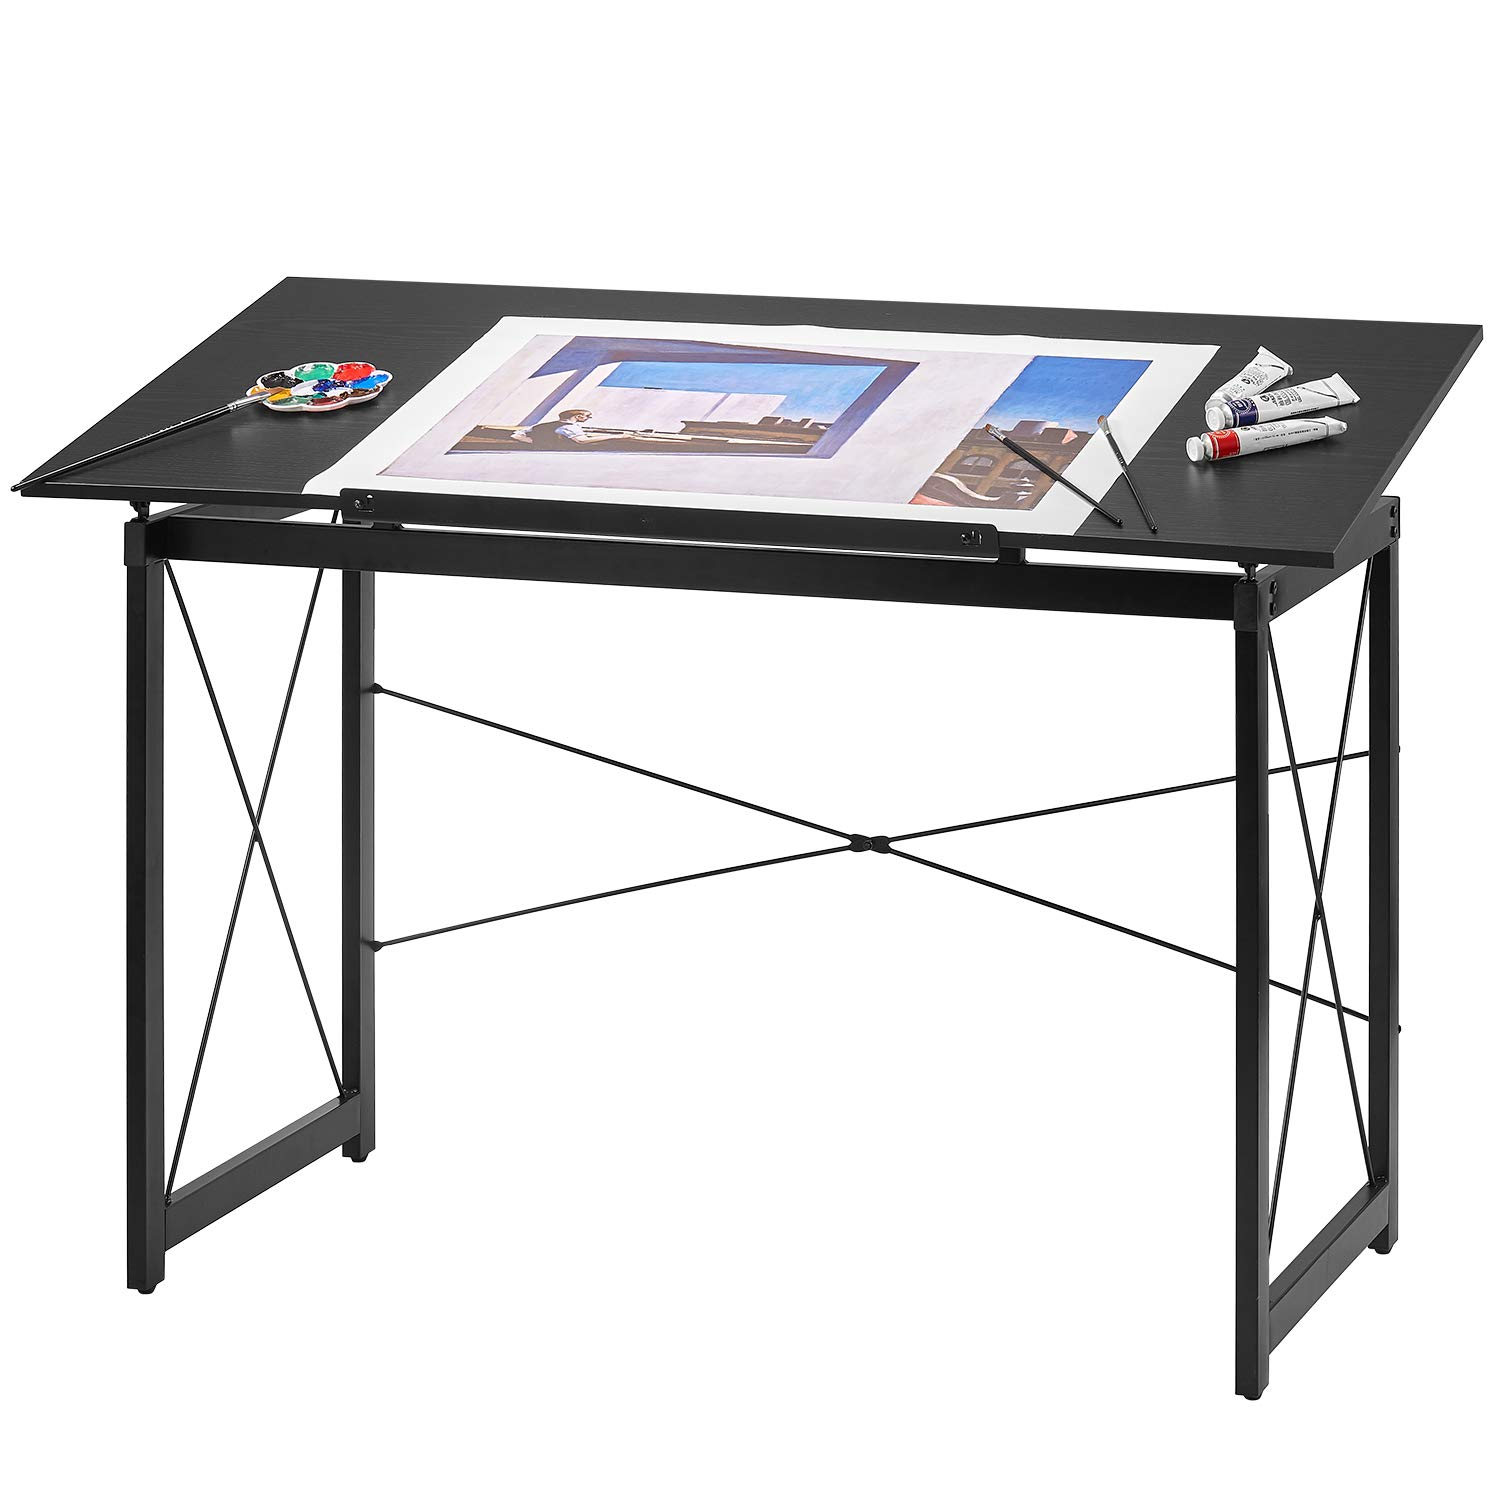 Kealive Drawing Desk Height Adjustable Drafting Table Tiltable Tabletop Wood Surface Craft Station Versatile for Drawing, Painting, Writing and Reading, Multipurpose Large Computer Desk, Black by kealive